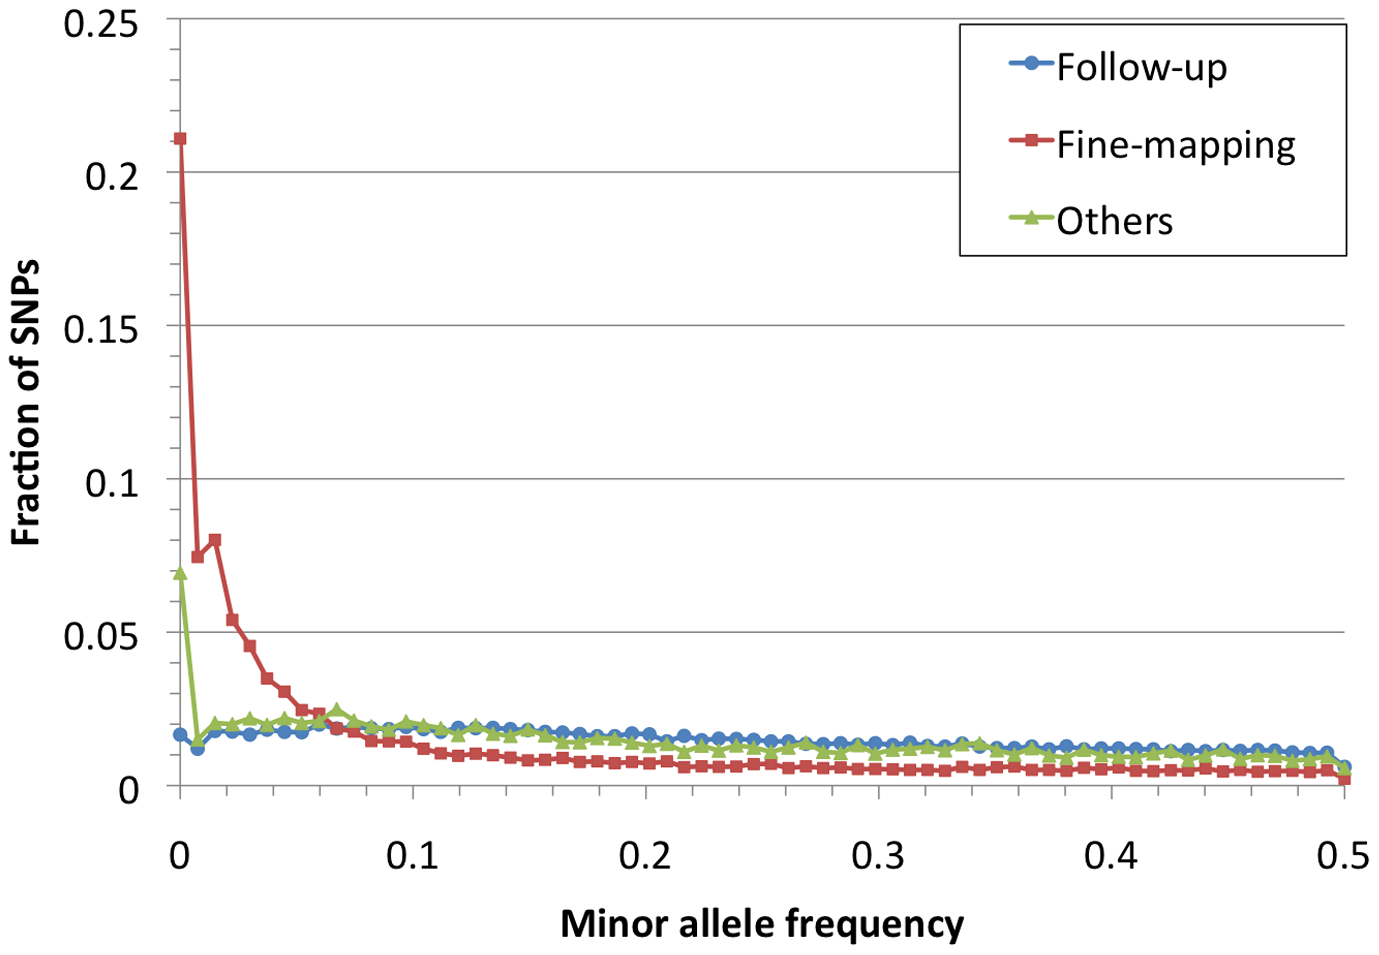 Allele frequency spectrum for Metabochip SNPs by design category.